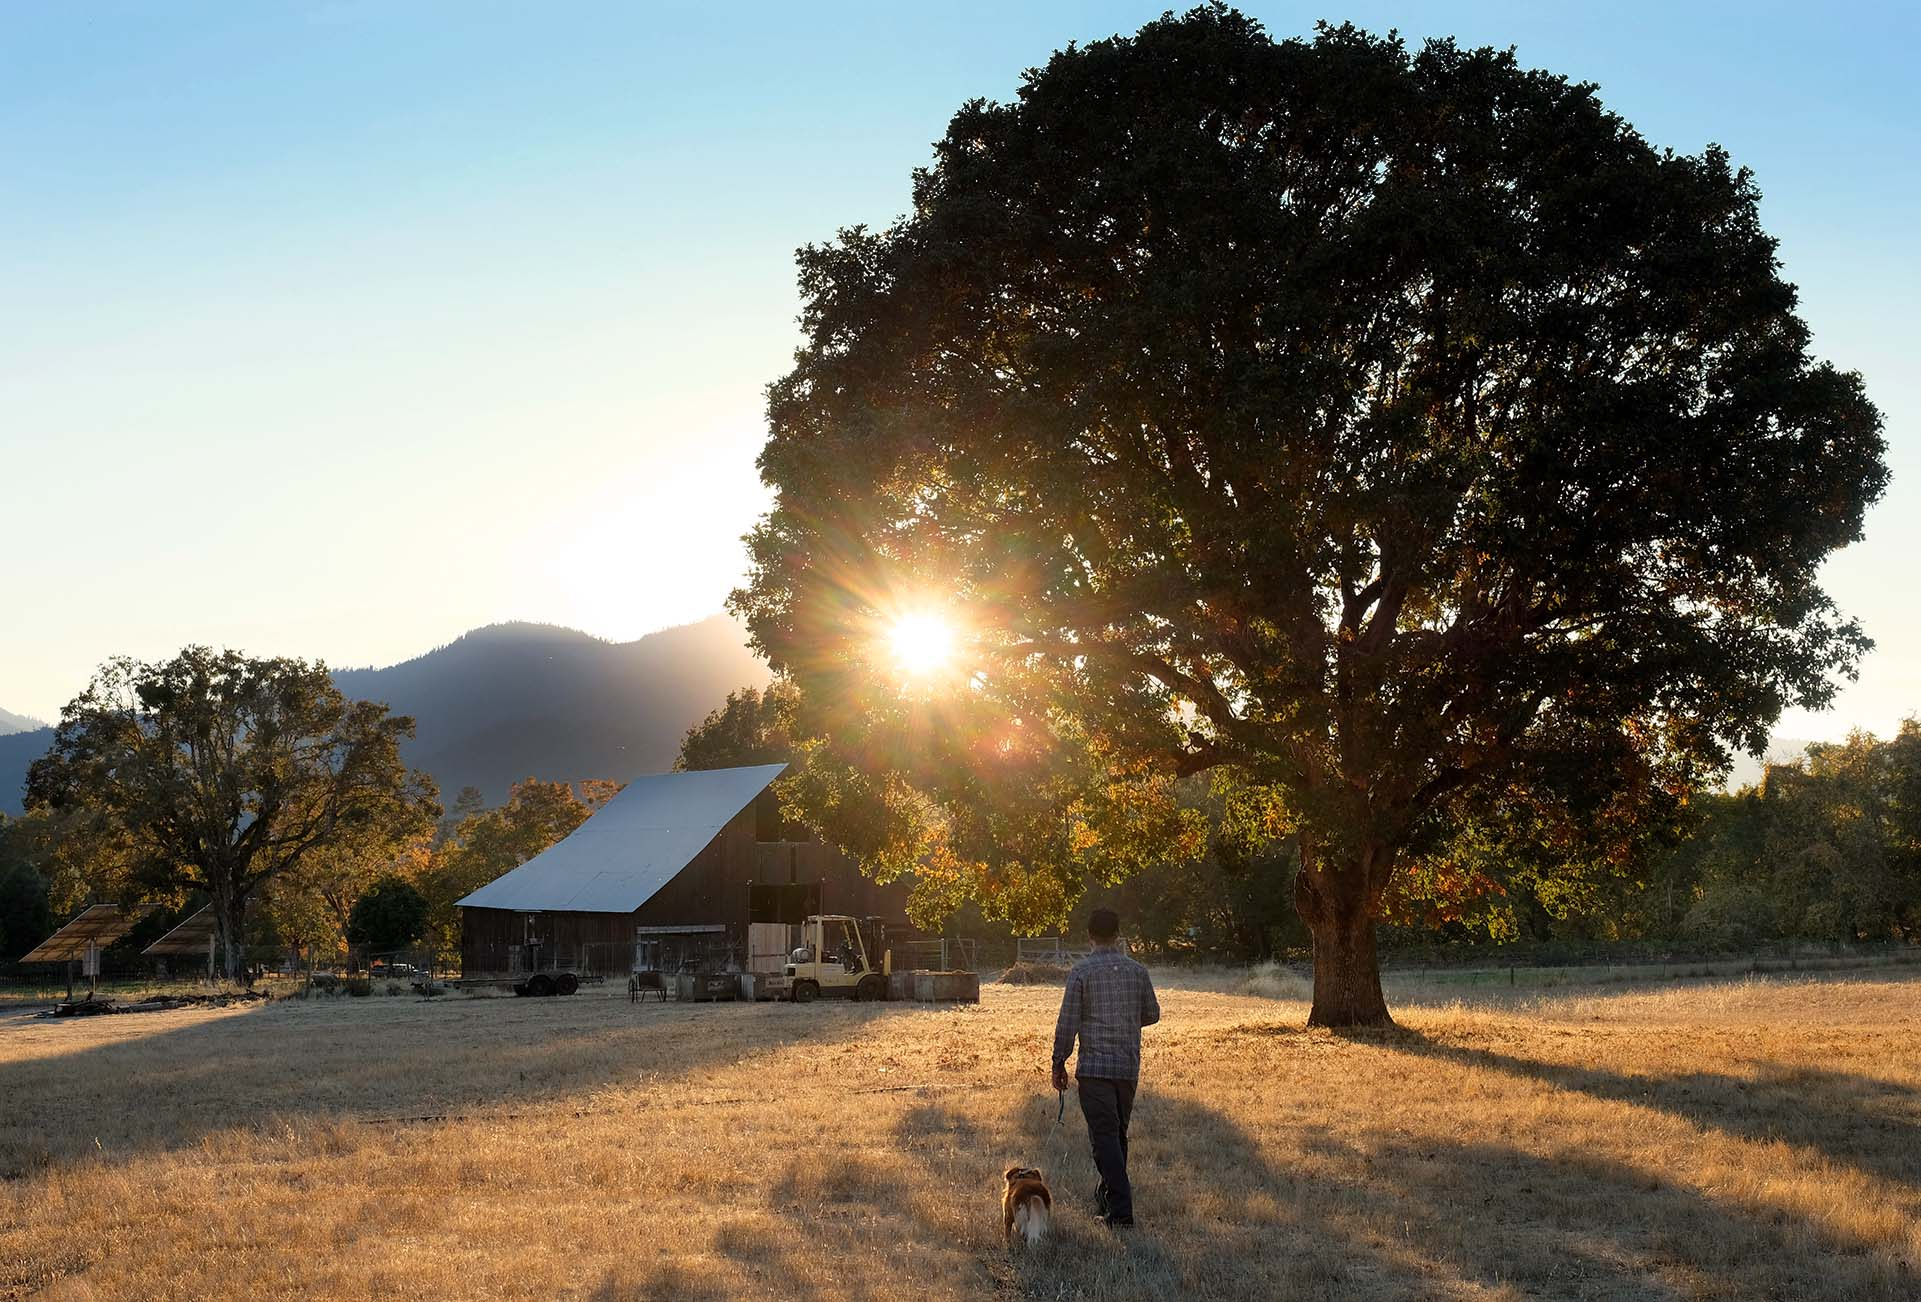 Jeremy and his dog walk towards the barn while the sun sets behind and oak tree.